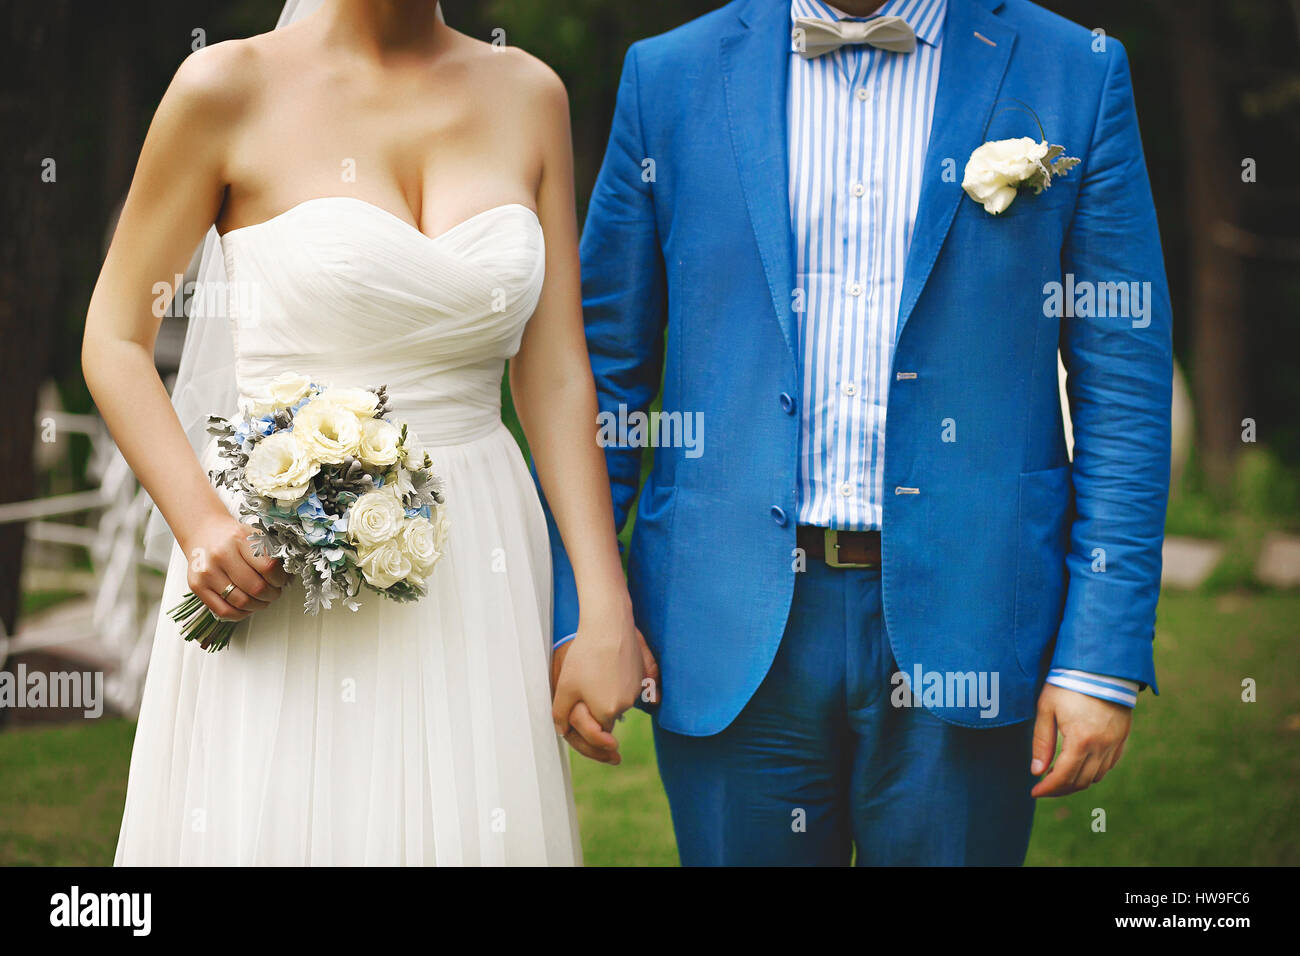 Young wedding couple. Groom and bride together. - Stock Image